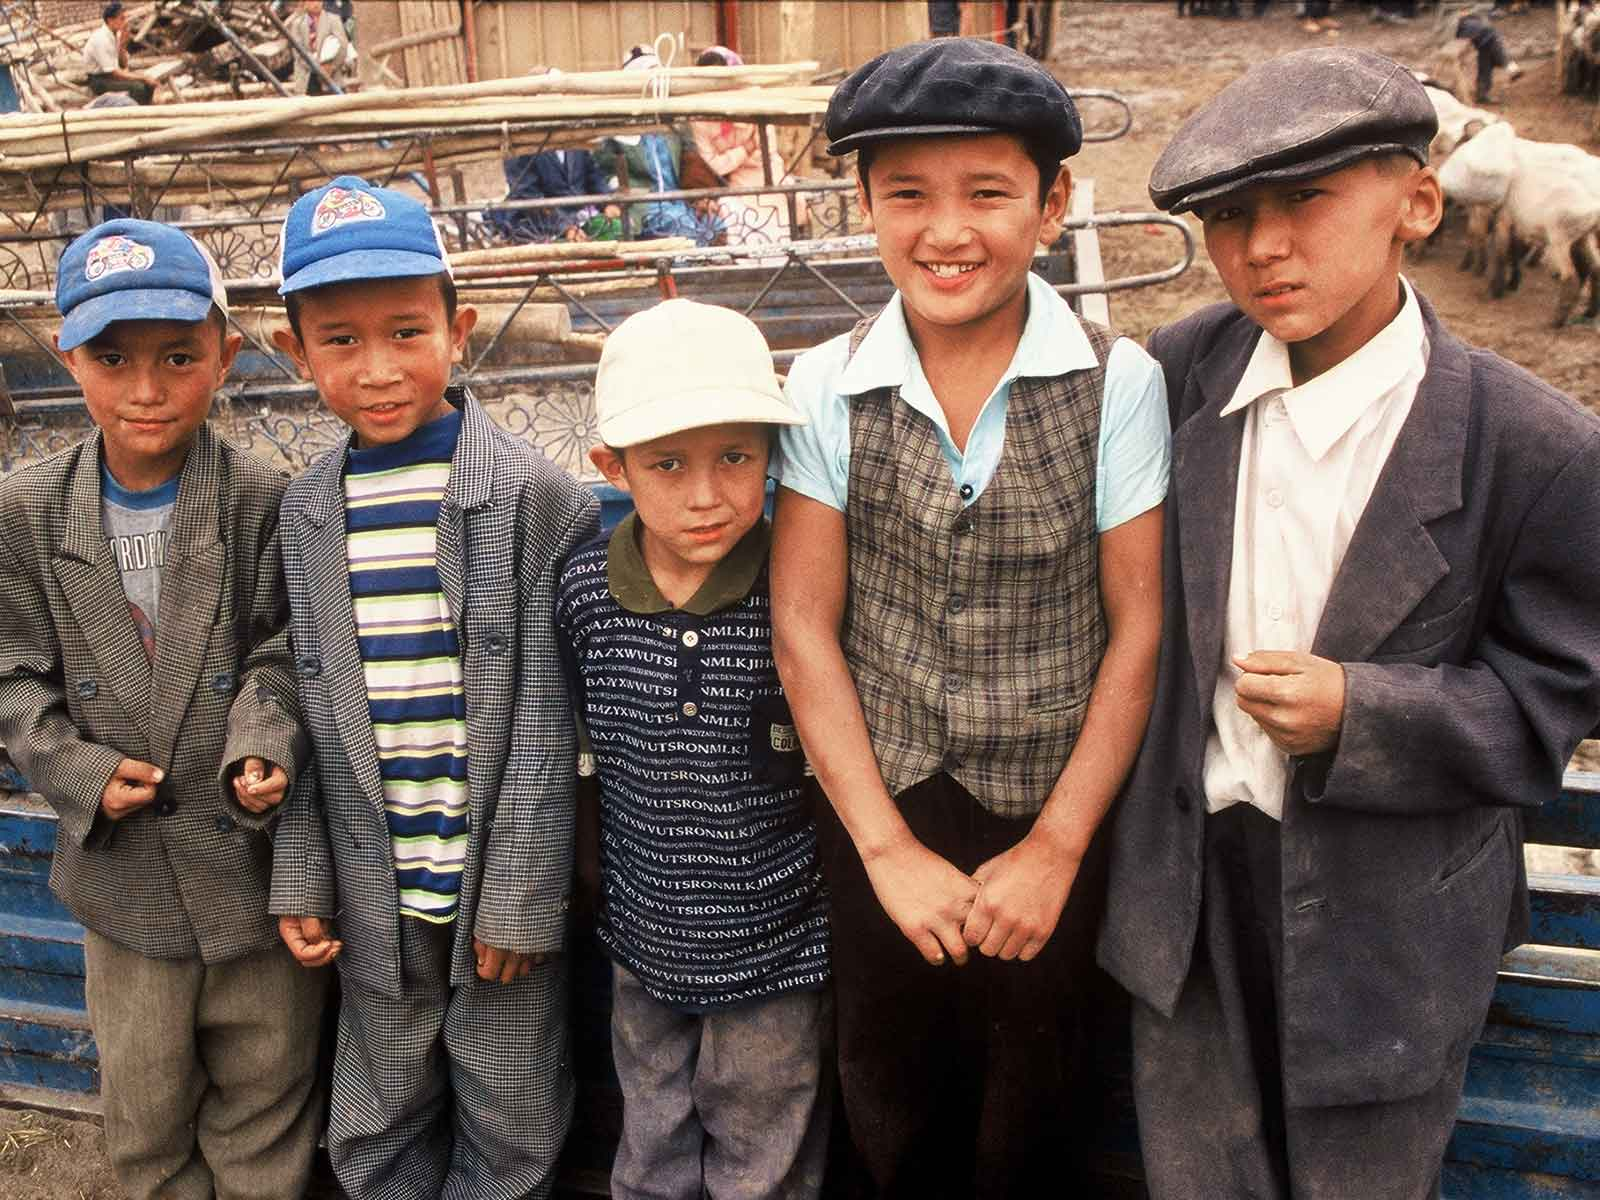 Uyghur youth - Kashgar Sunday Bazaar - China Silk Road Photo Journal - Steven Andrew Martin PhD